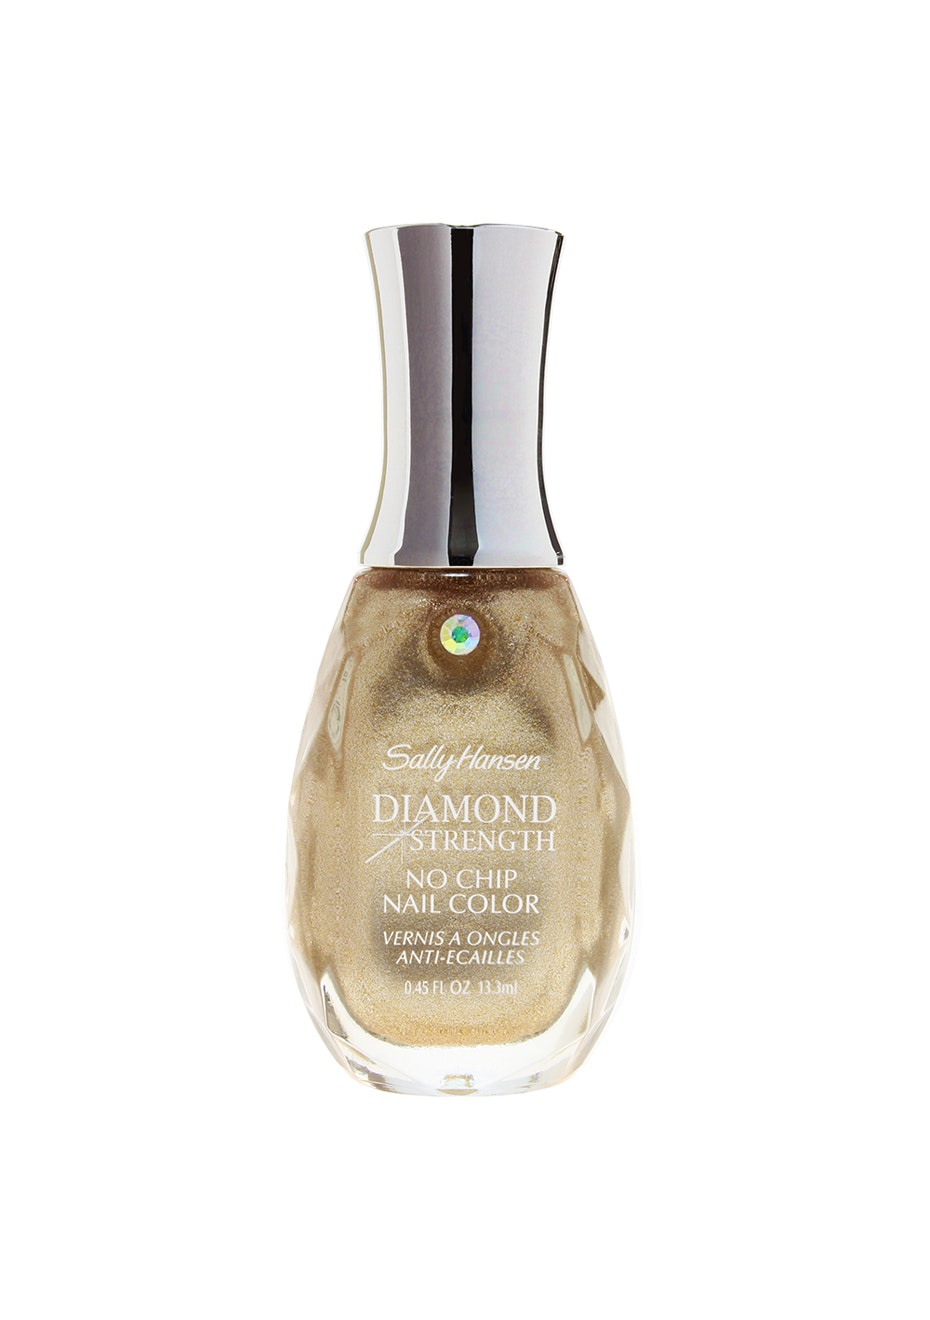 Sally Hansen Diamond Strength Nail Color #504 INFINITY BAND